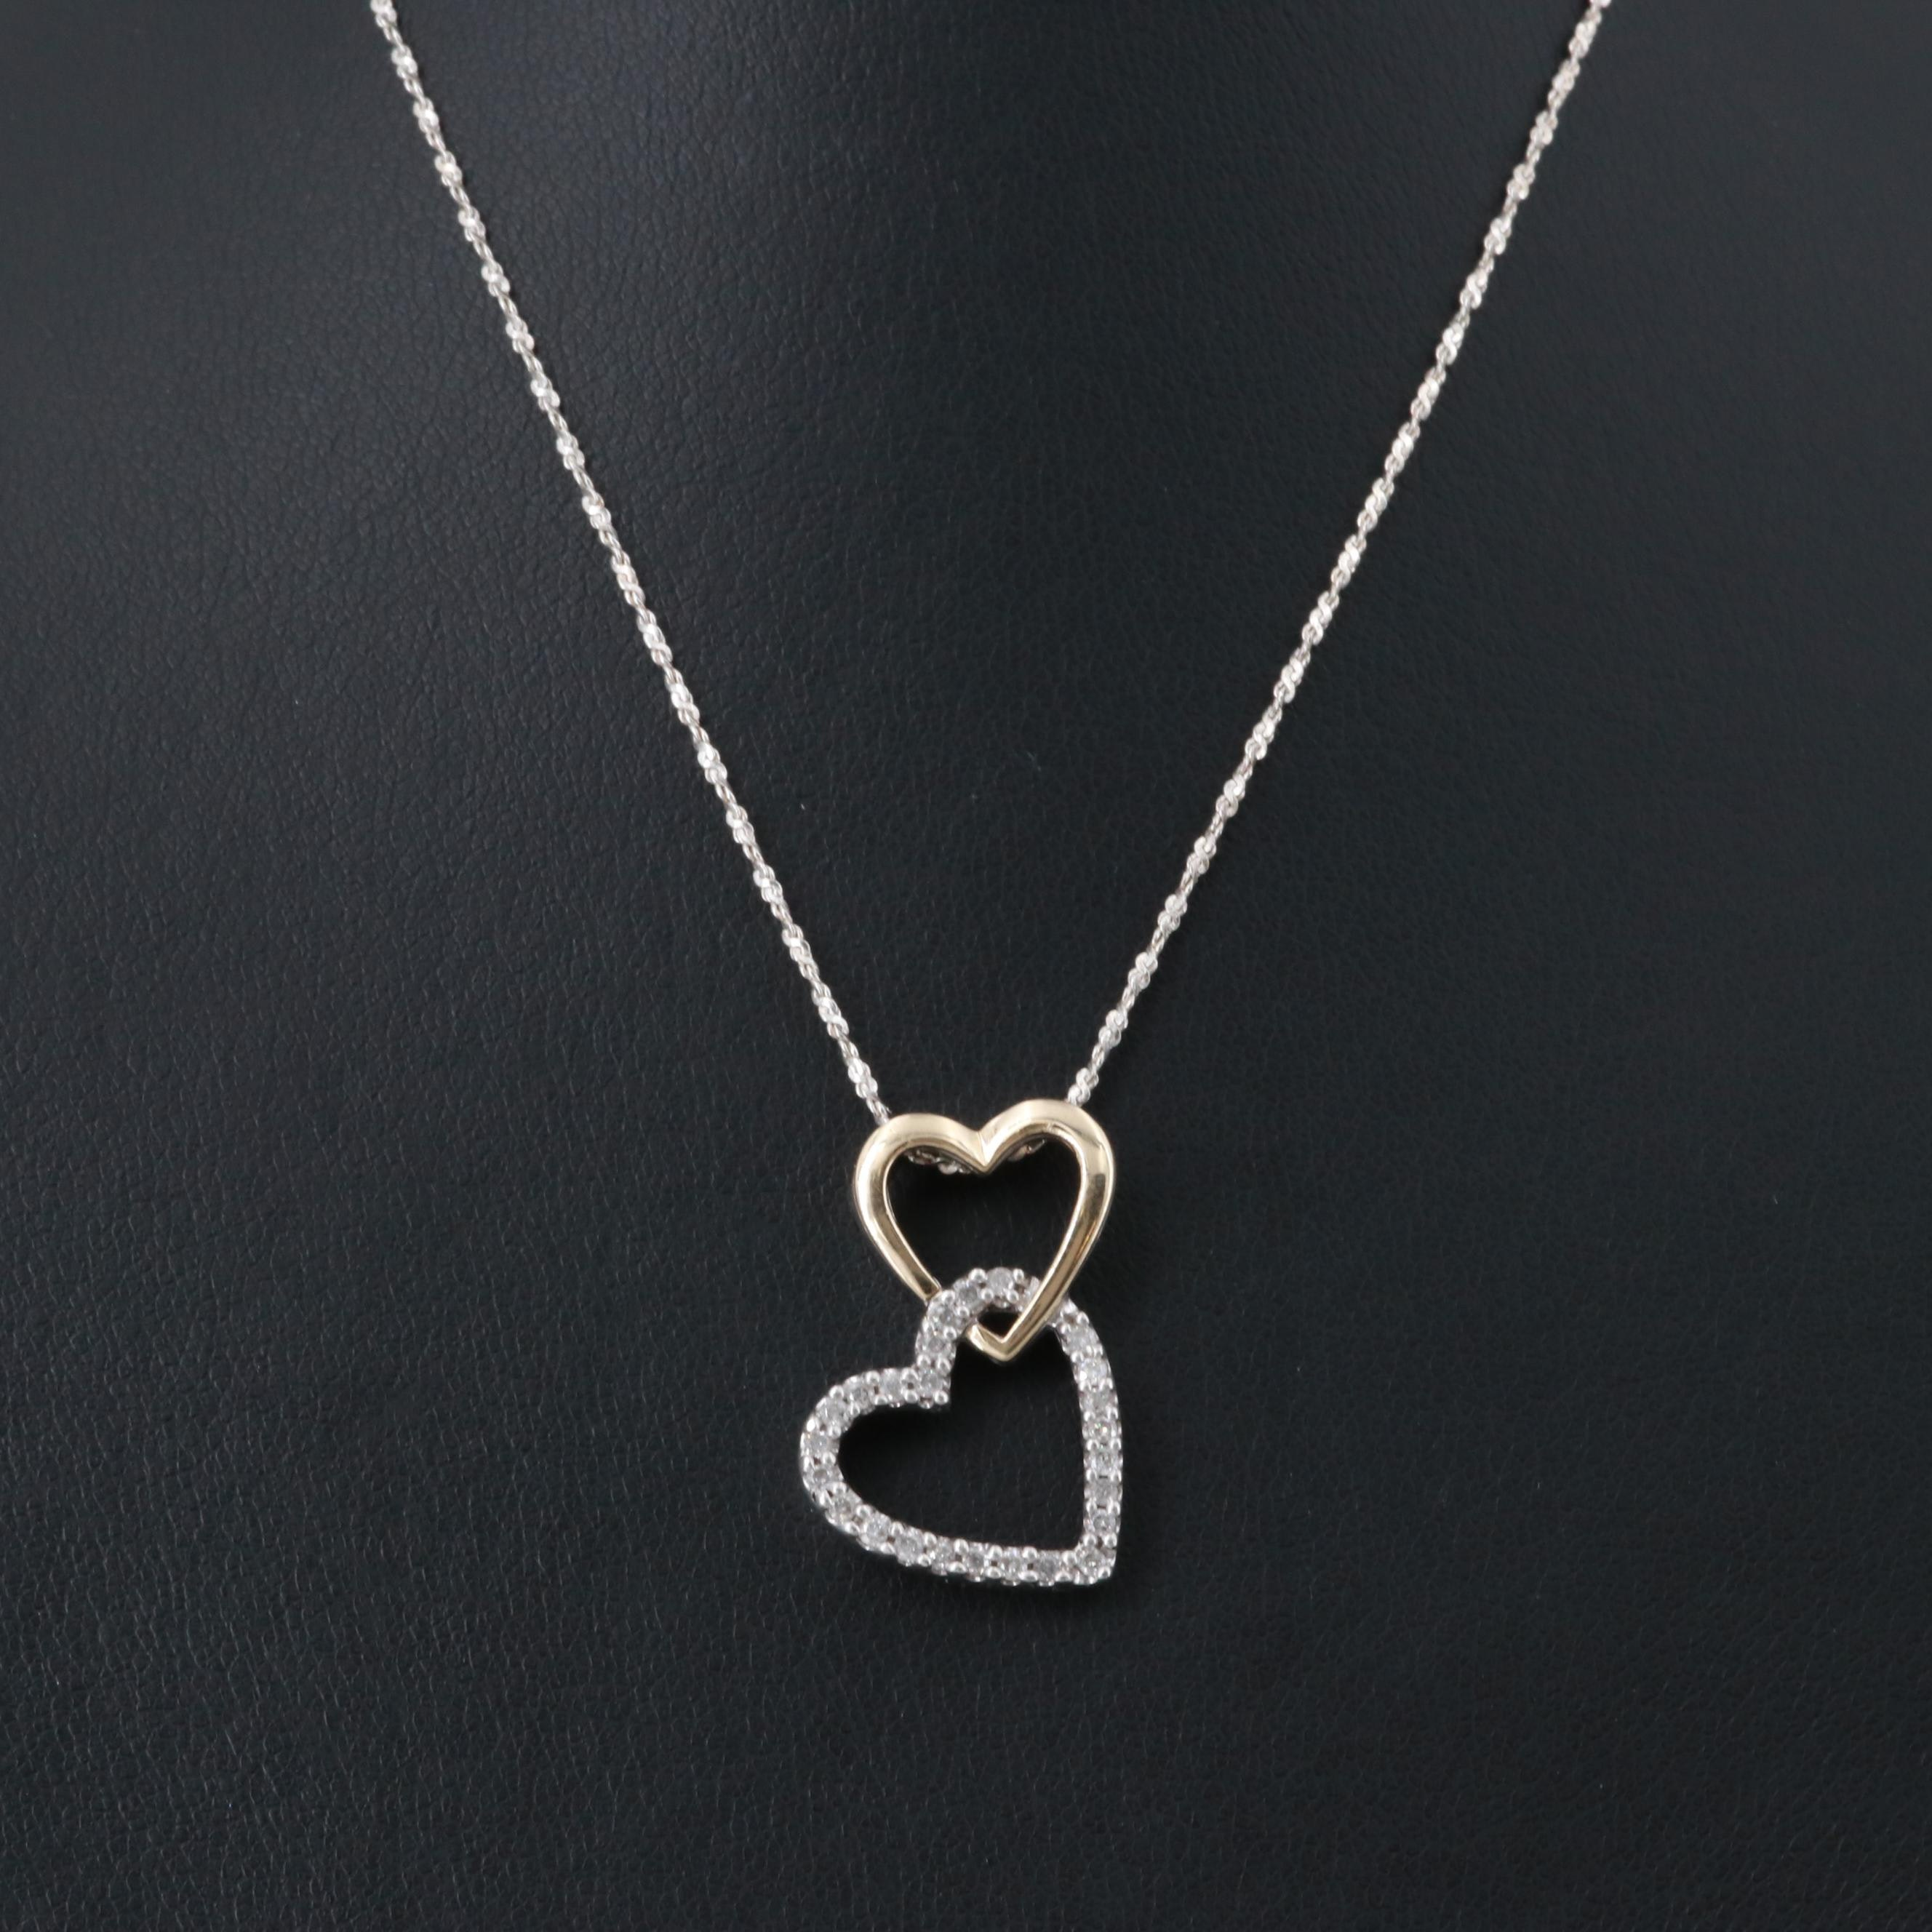 Sterling Silver Diamond Heart Pendant Necklace with 14K Rose Gold Accents